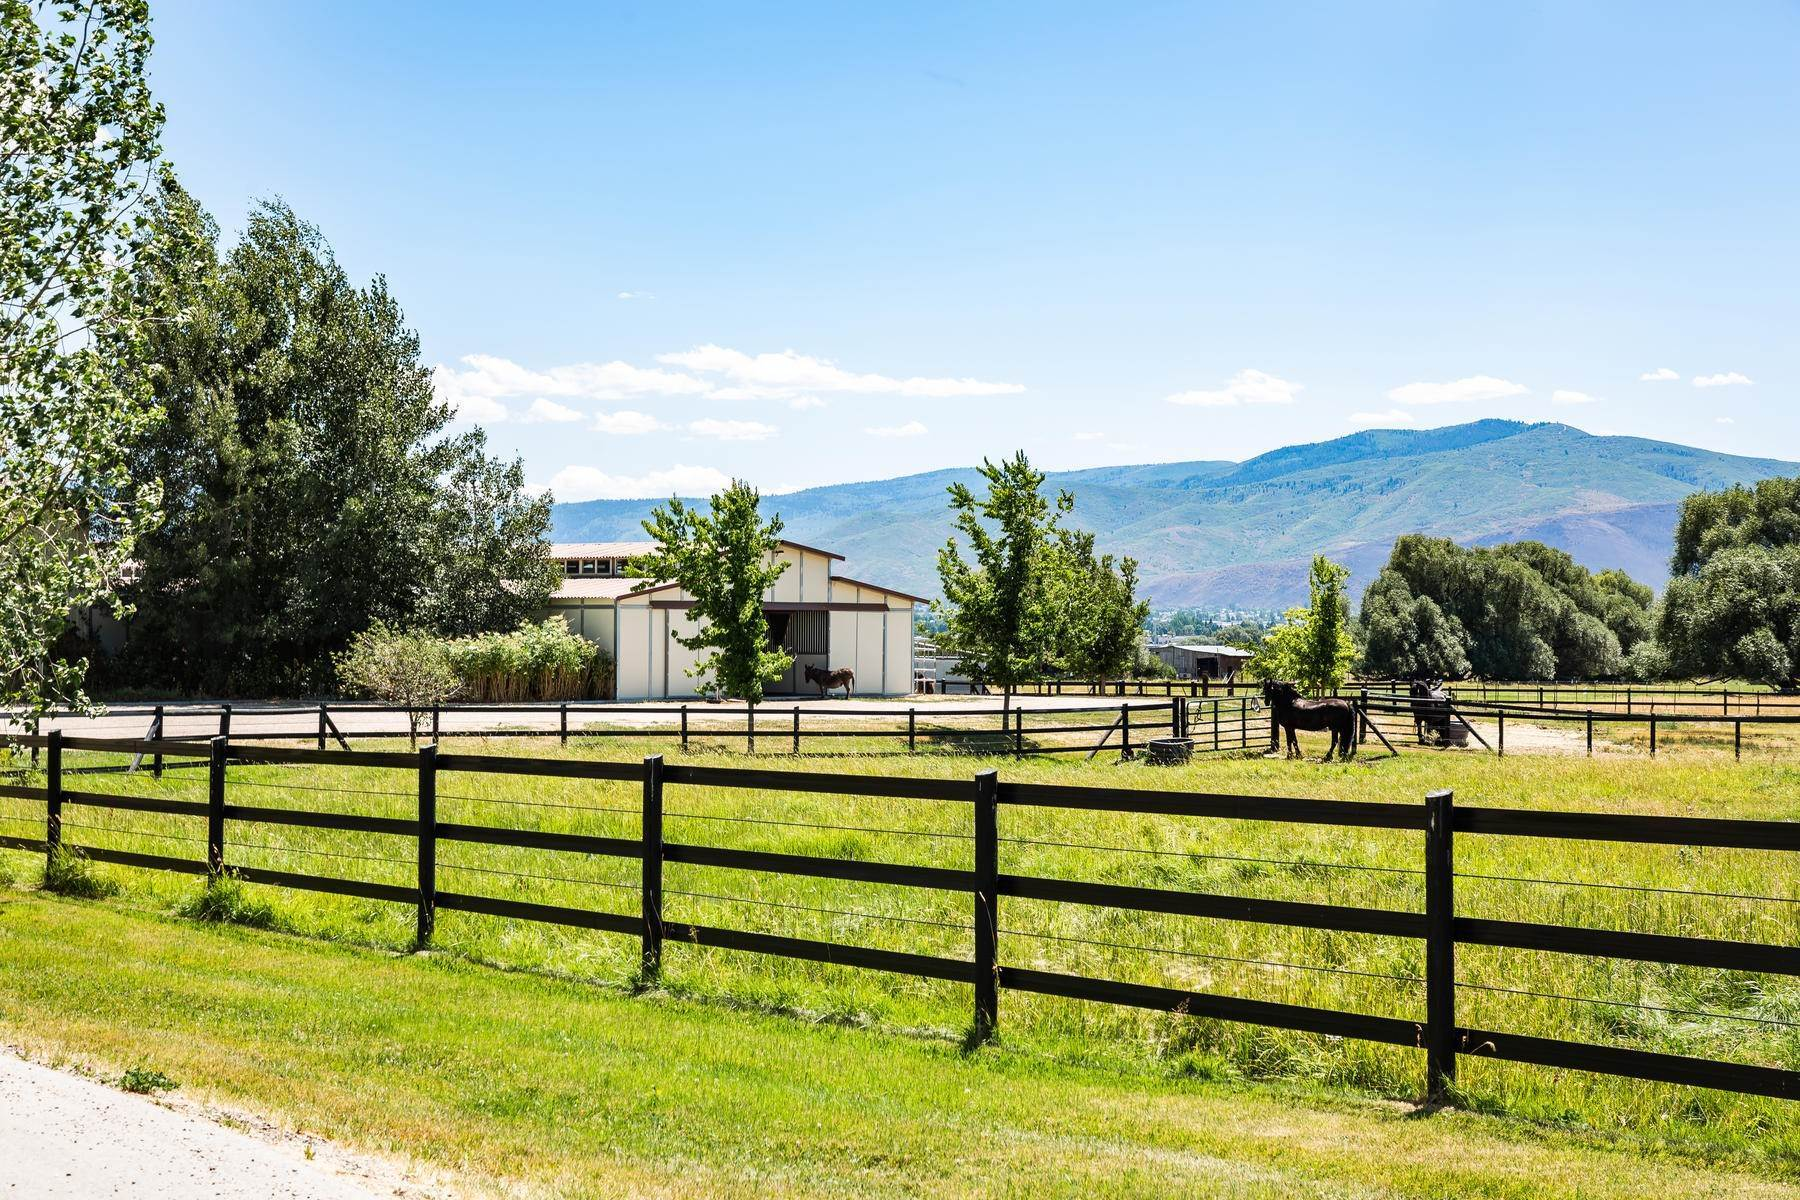 48. Farm and Ranch Properties for Sale at Shamans Circle Ranch—61 Acres with an Indoor Riding Facility in Heber 1336 N 1750 W Heber City, Utah 84032 United States